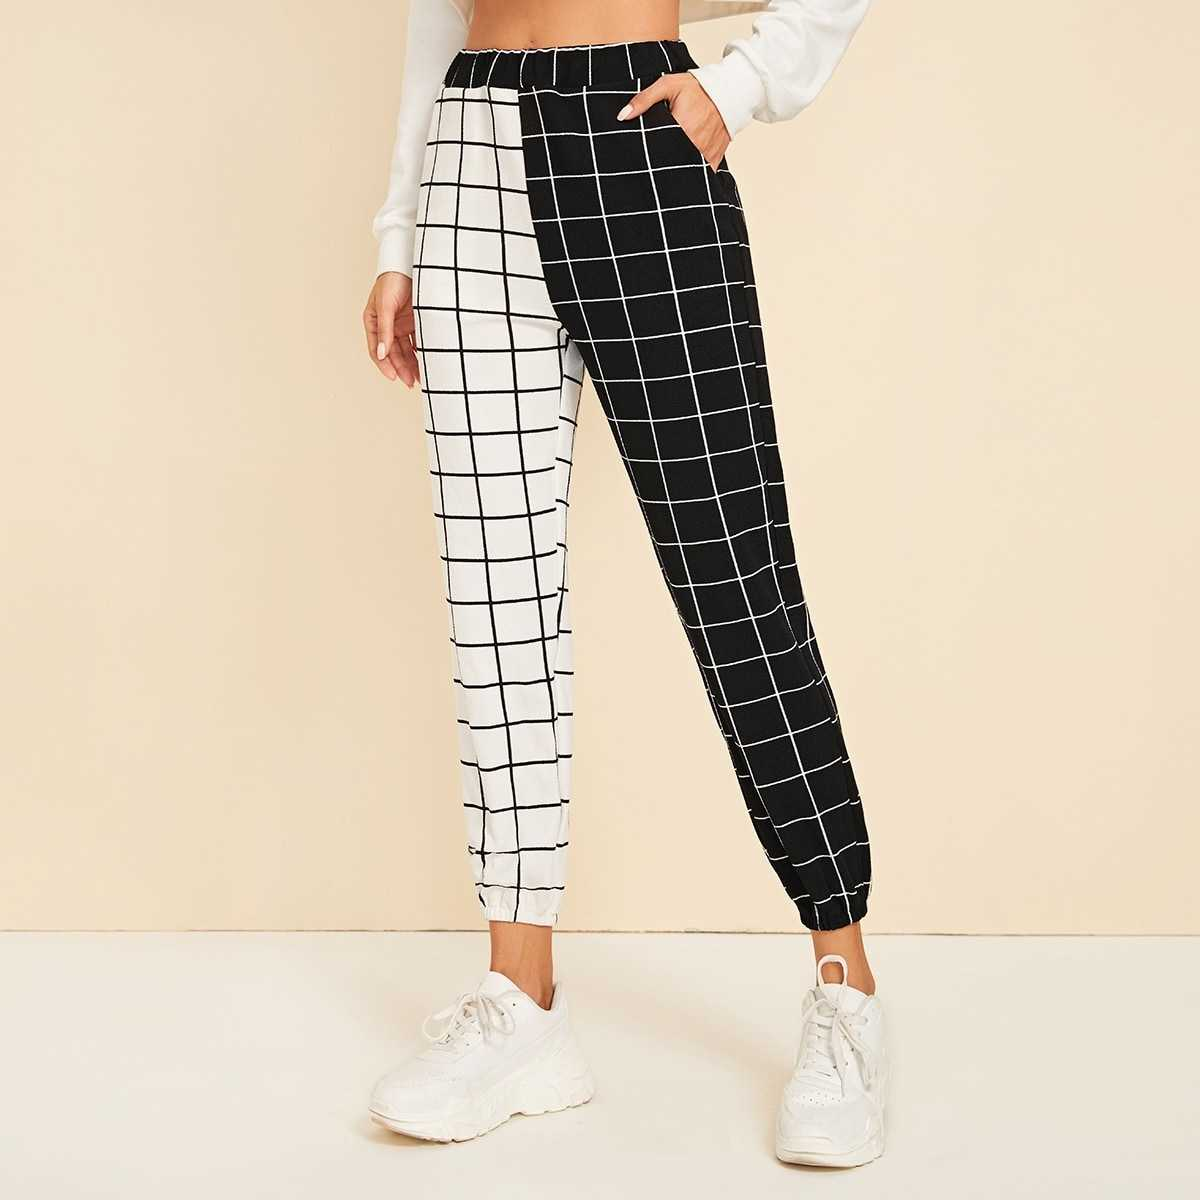 Two Tone Slant Pocket Grid Pants in Black and White by ROMWE on GOOFASH